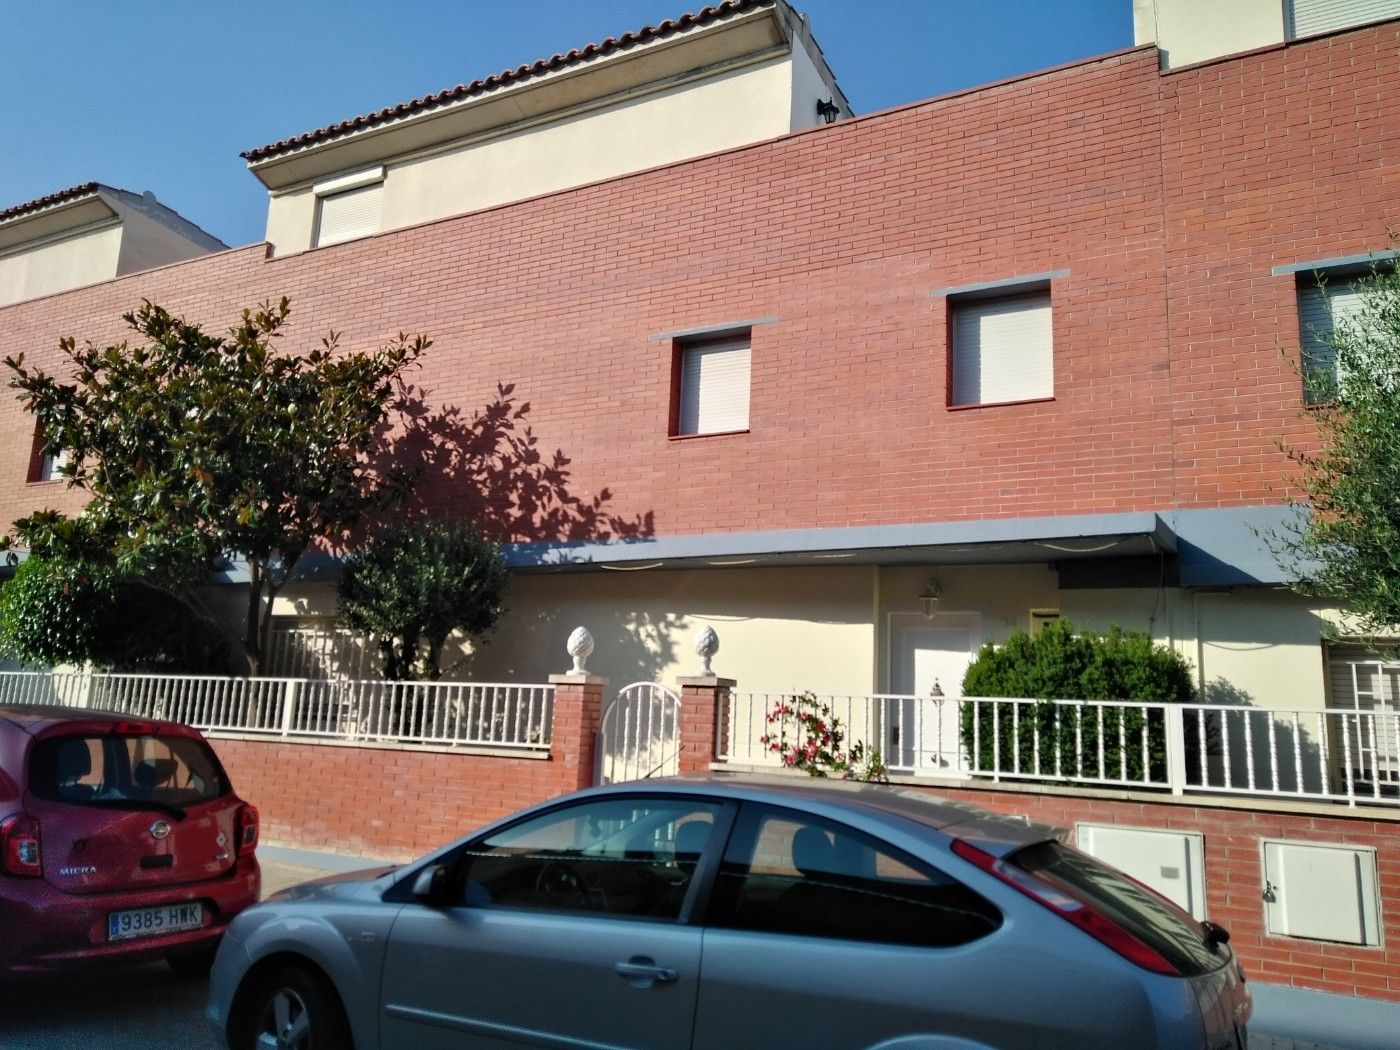 Rent Towny house in Carrer garbi, 34